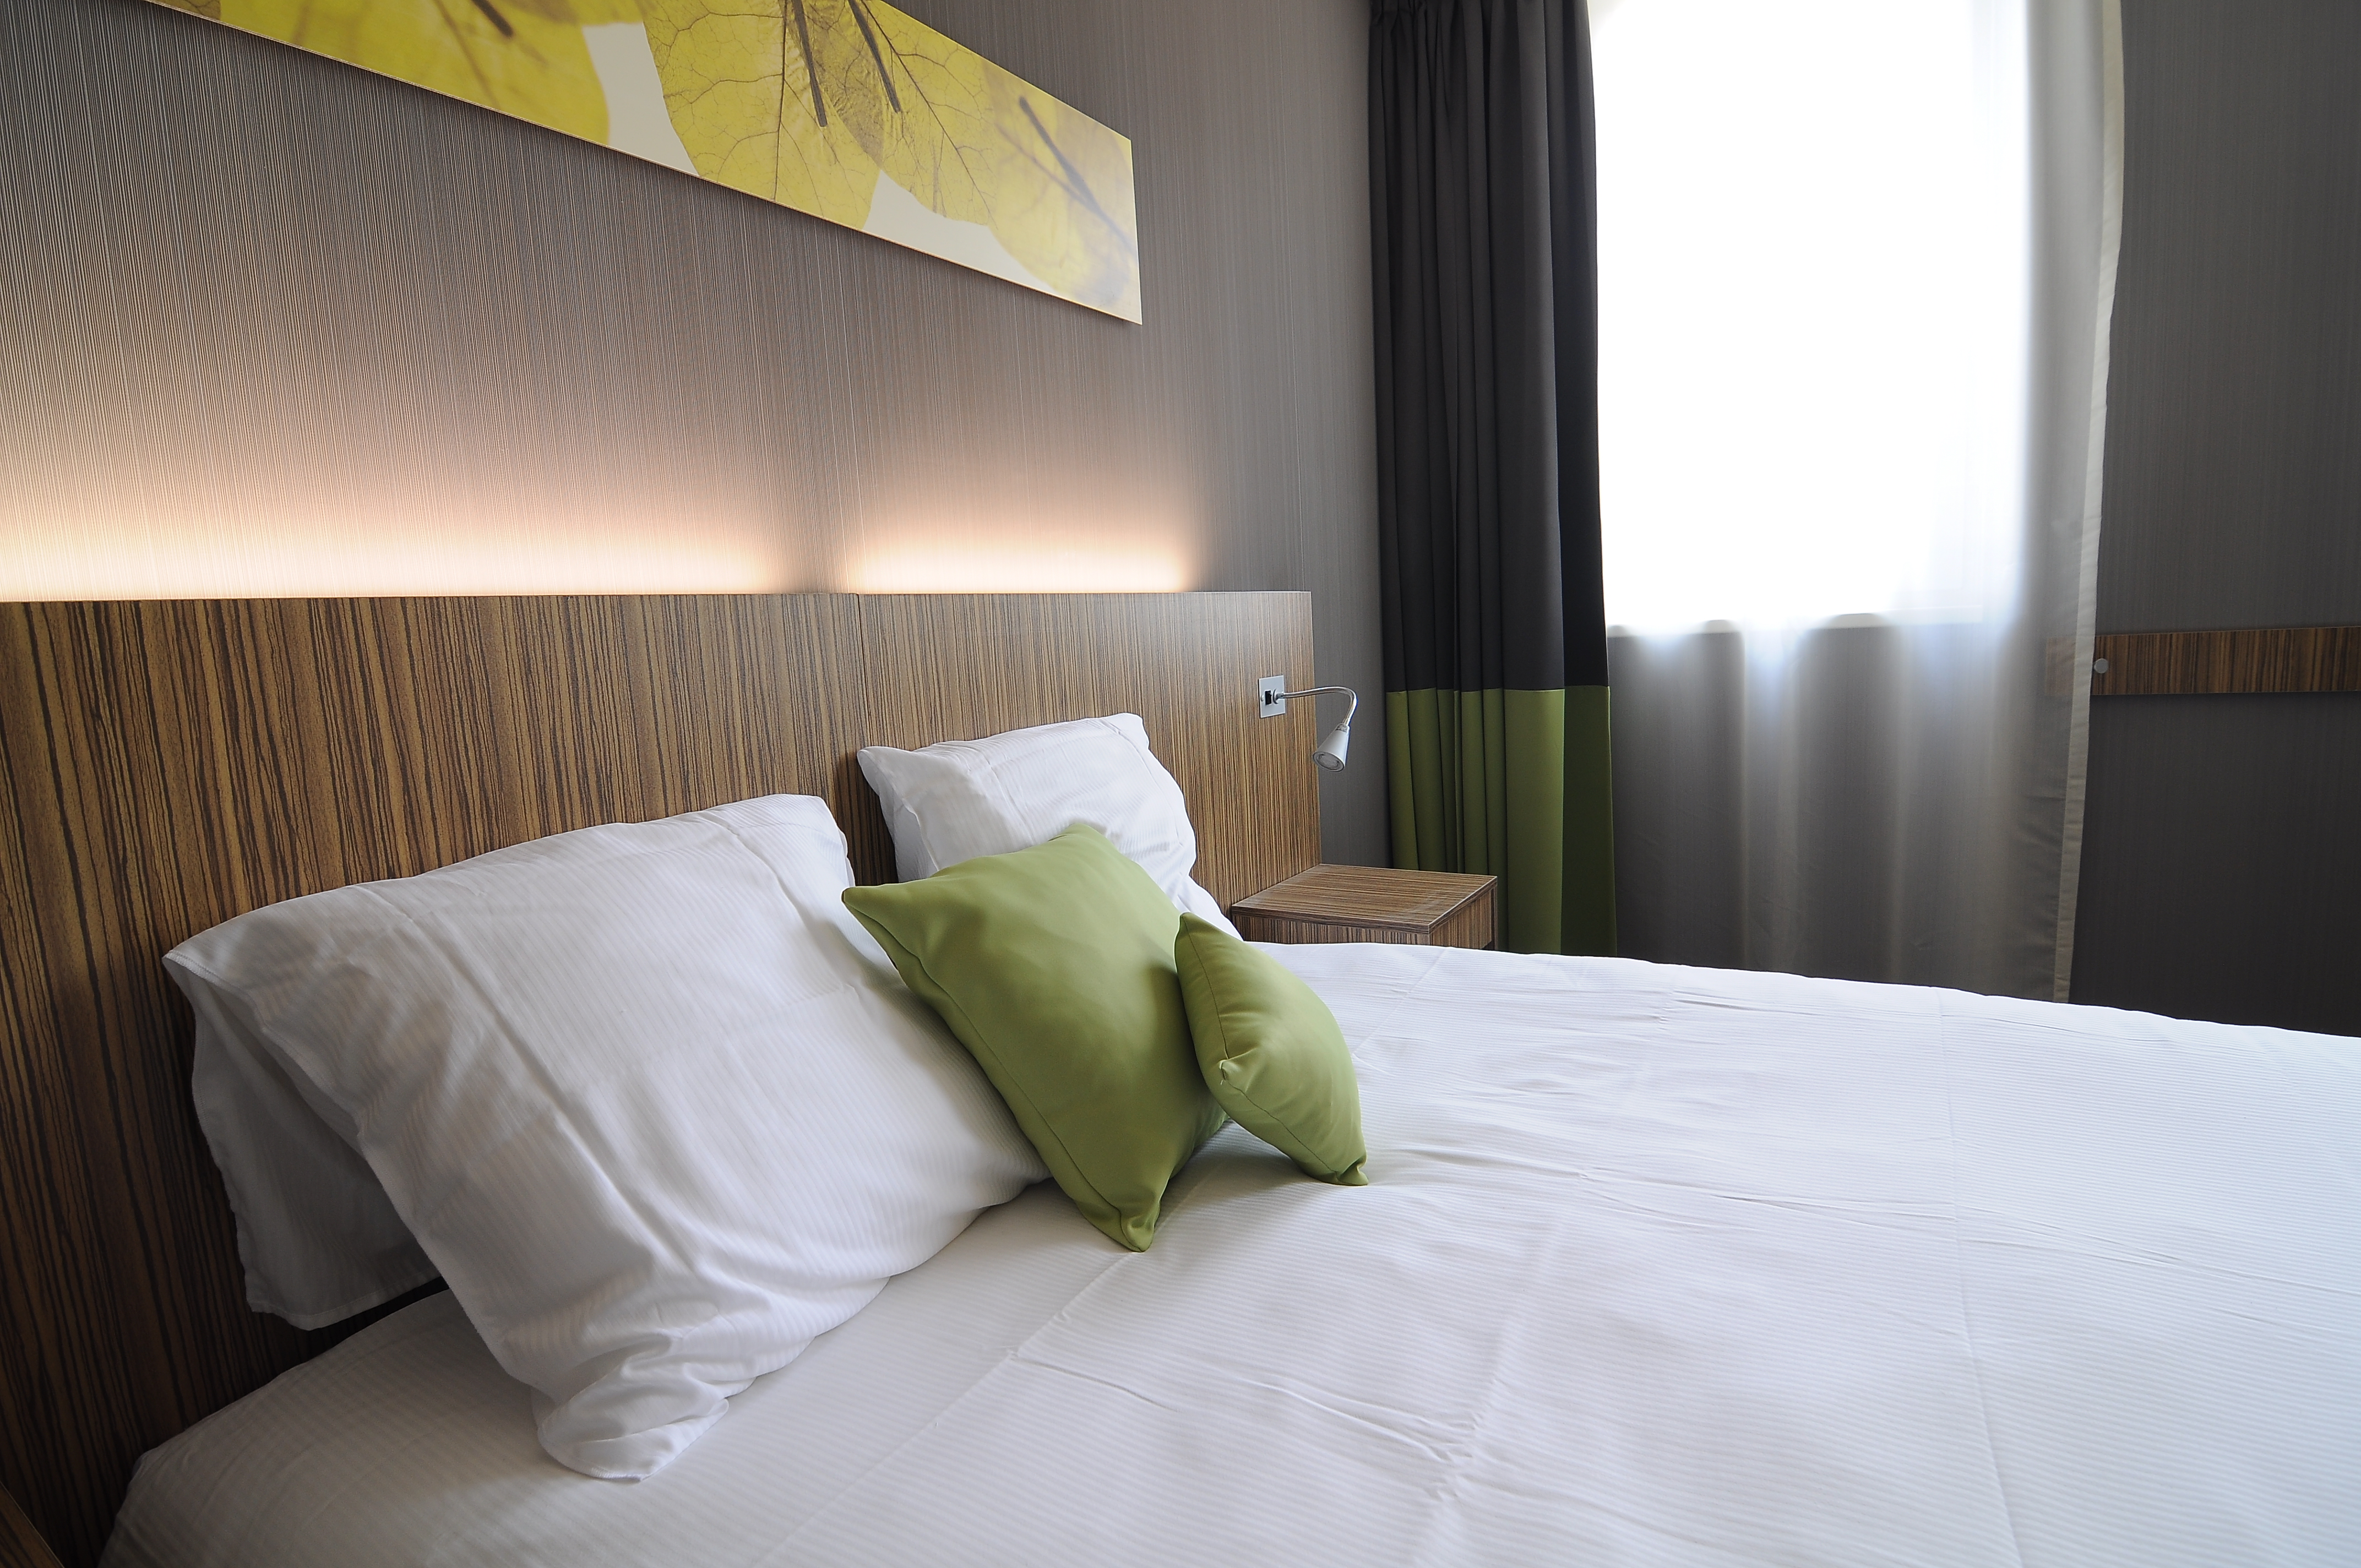 The Best Western Hotel Brussels South Is Located Along E19 Paris Motorway Just A Few Minutes Drive From Centre Of